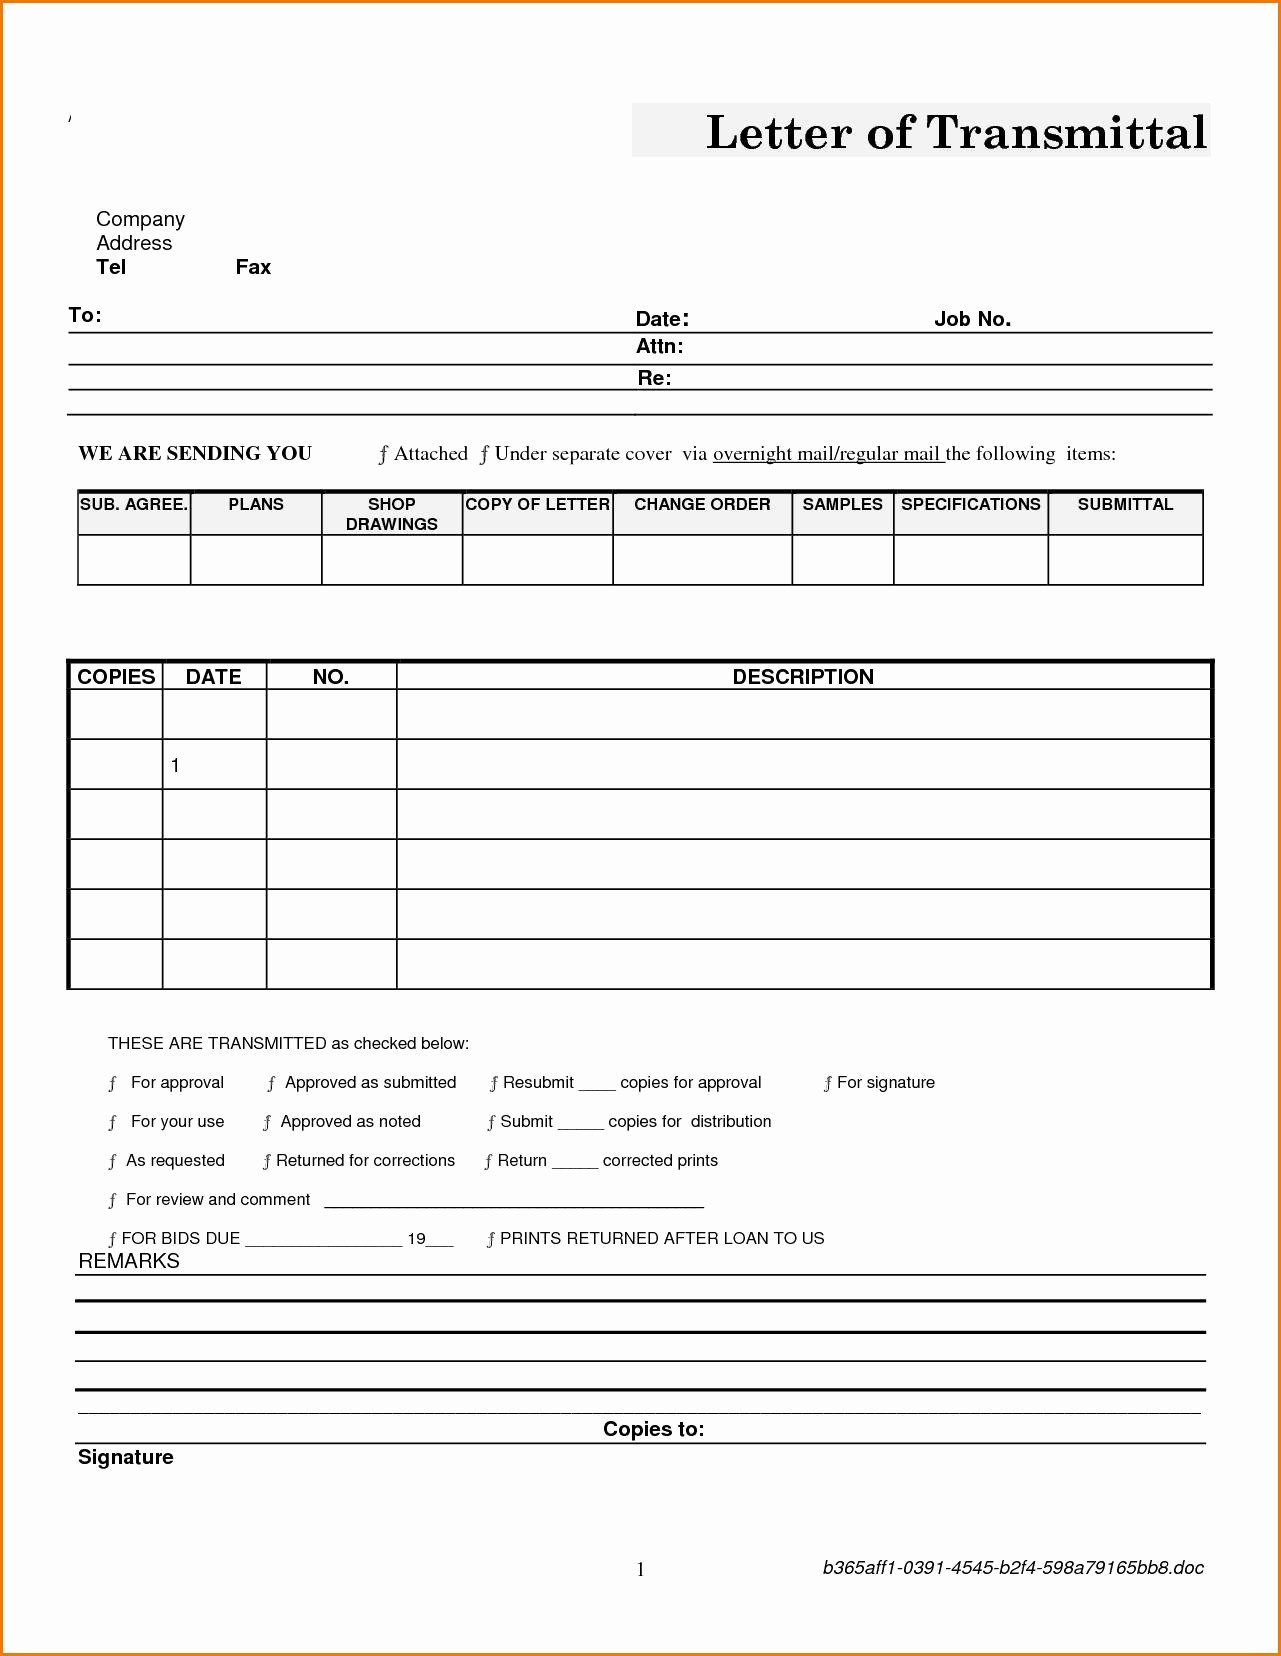 Sample Of Letter Of Transmittal Beautiful Letter Transmittal Template Construction Samples